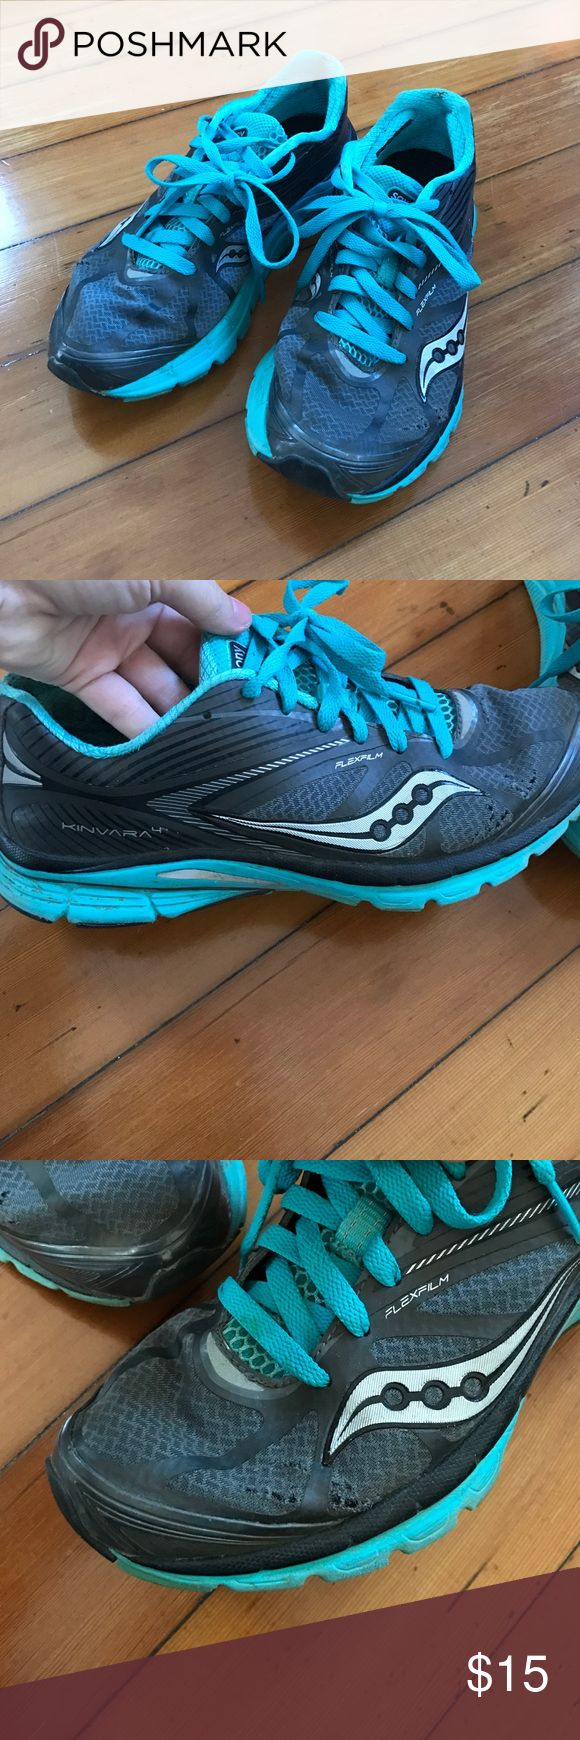 Saucony Kinvara 4 Sneakers Used sneakers, in good condition with visible signs of wear (see pics). Saucony Shoes Sneakers